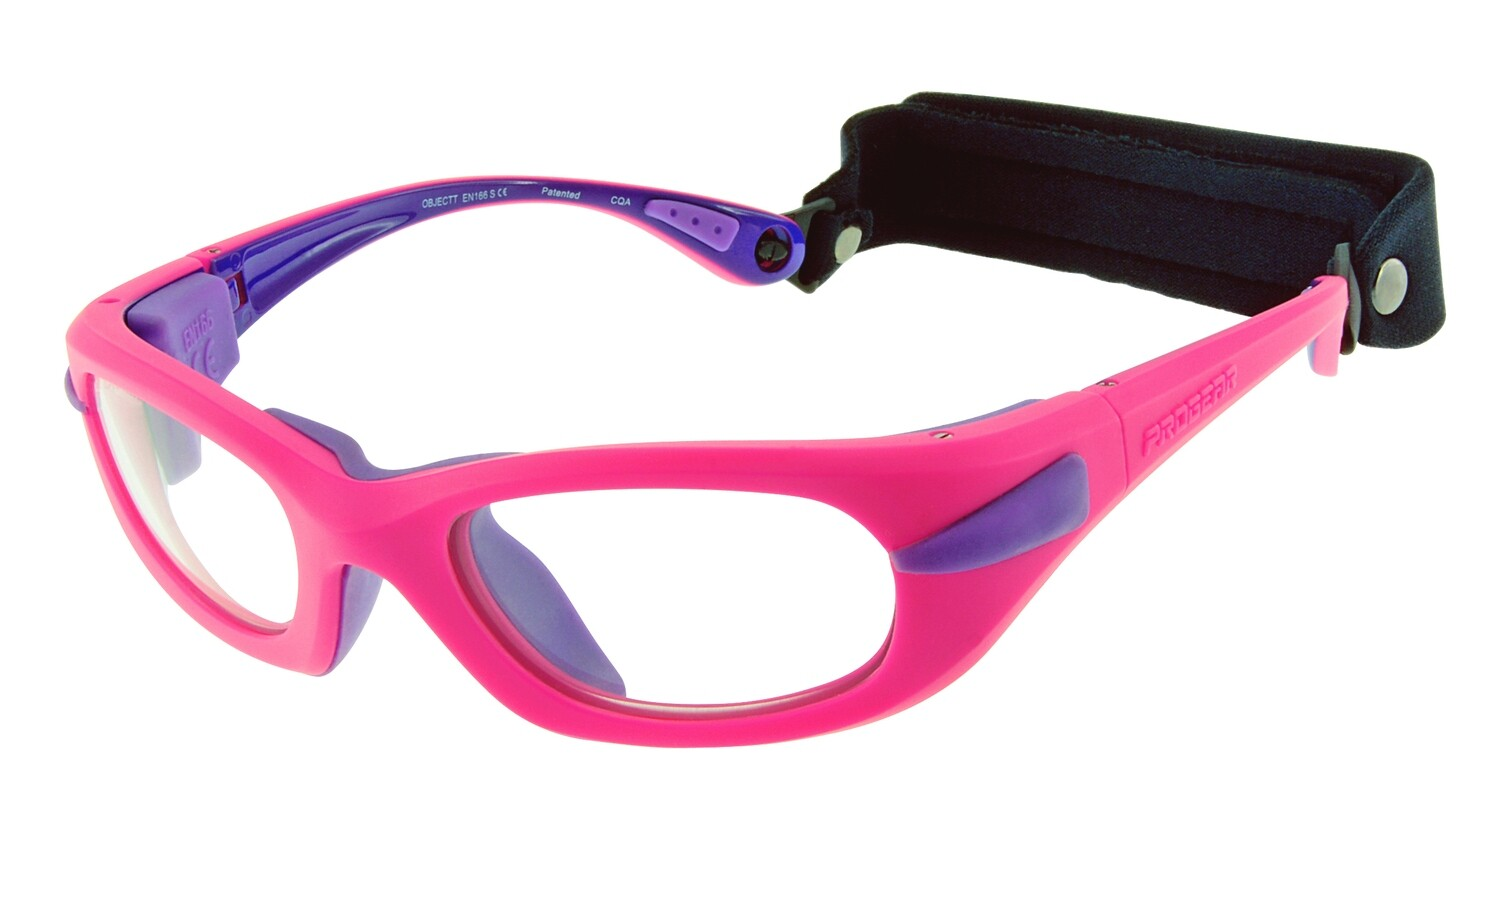 Eyeguard - M size - Temple version (11 colors)